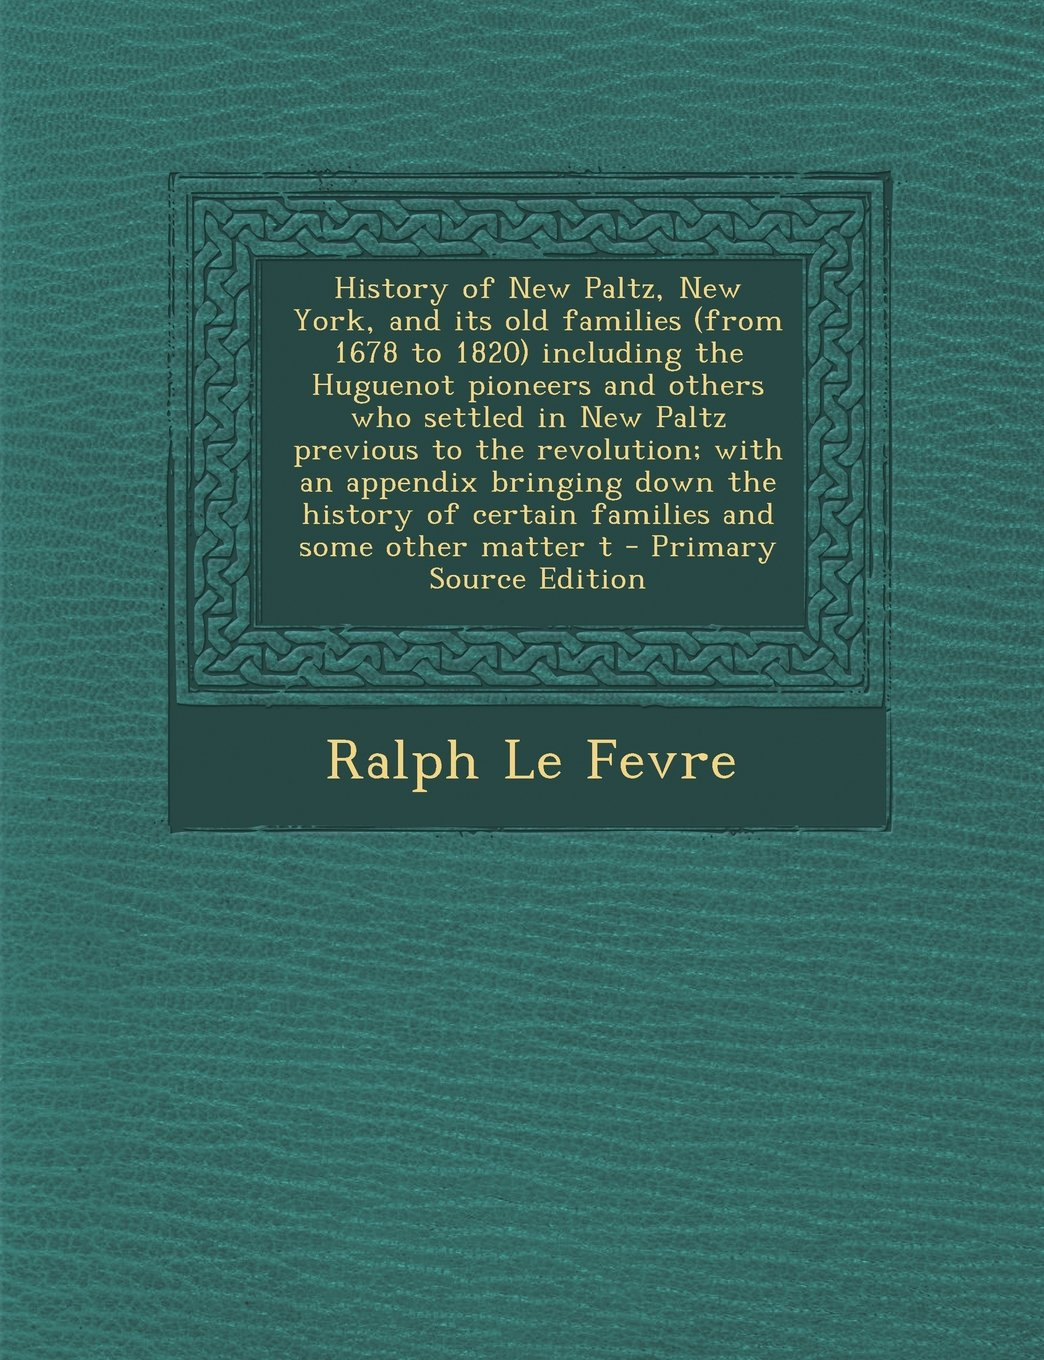 Download History of New Paltz, New York, and Its Old Families (from 1678 to 1820) Including the Huguenot Pioneers and Others Who Settled in New Paltz Previous pdf